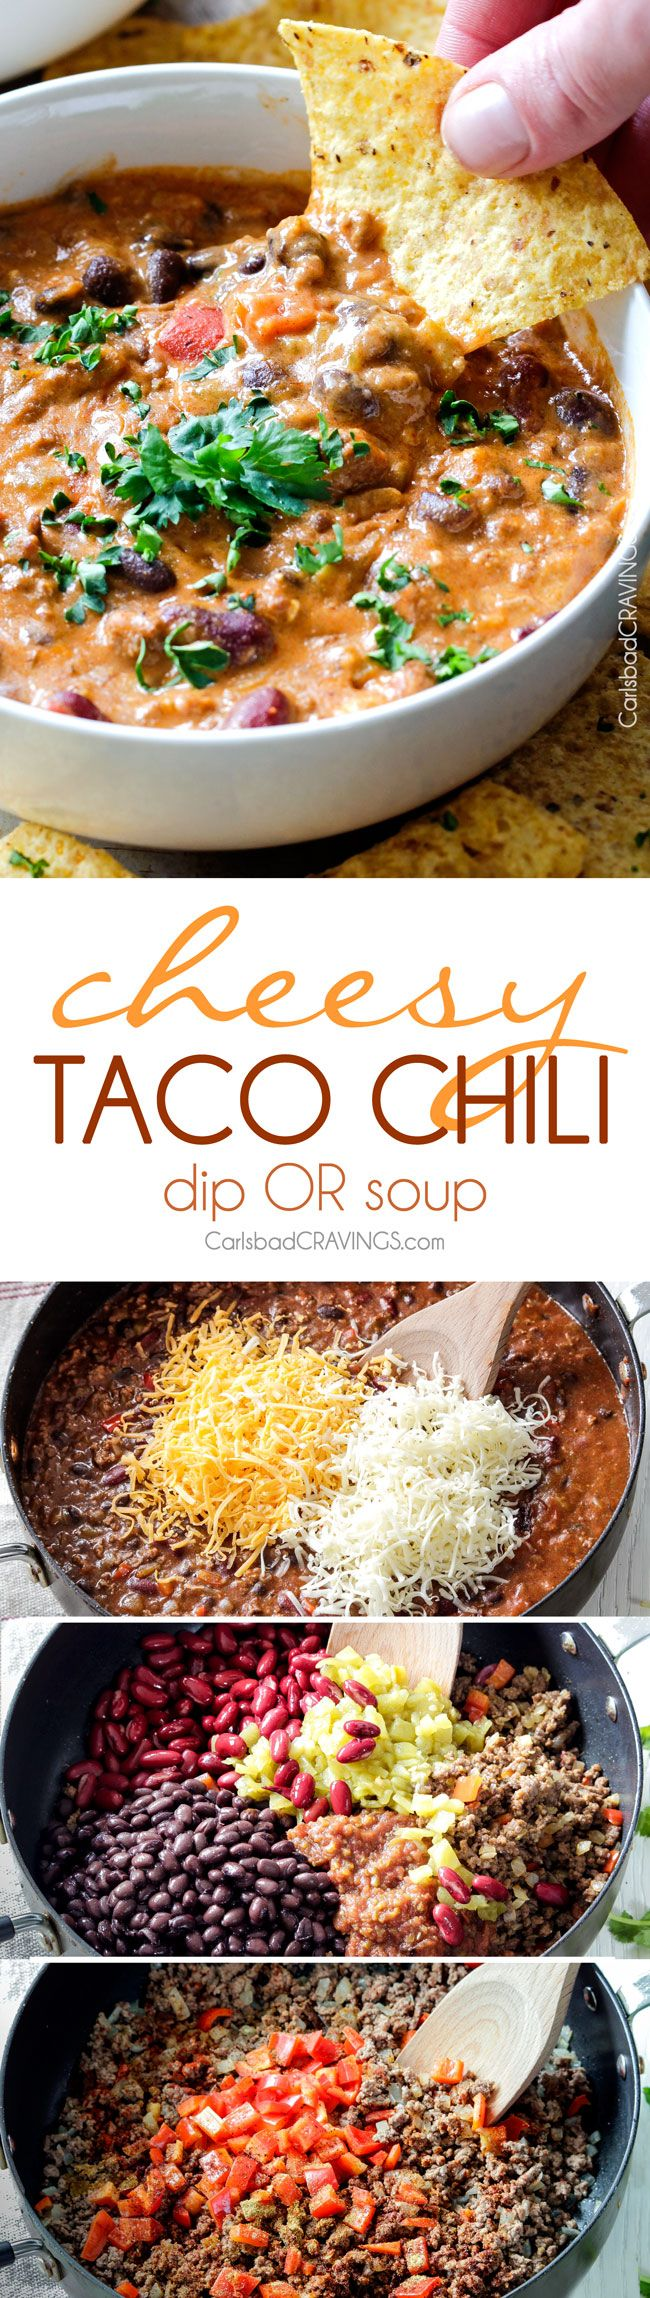 Homemade Cheesy Chili Dip or Soup LOADED with your favorite chili ingredients, spices and SO irresistibly cheesy with NO processed cheese! Serve as a crowd pleasing appetizer or simply thin for THE most addicting soup! my favorite dip ever! #gameday